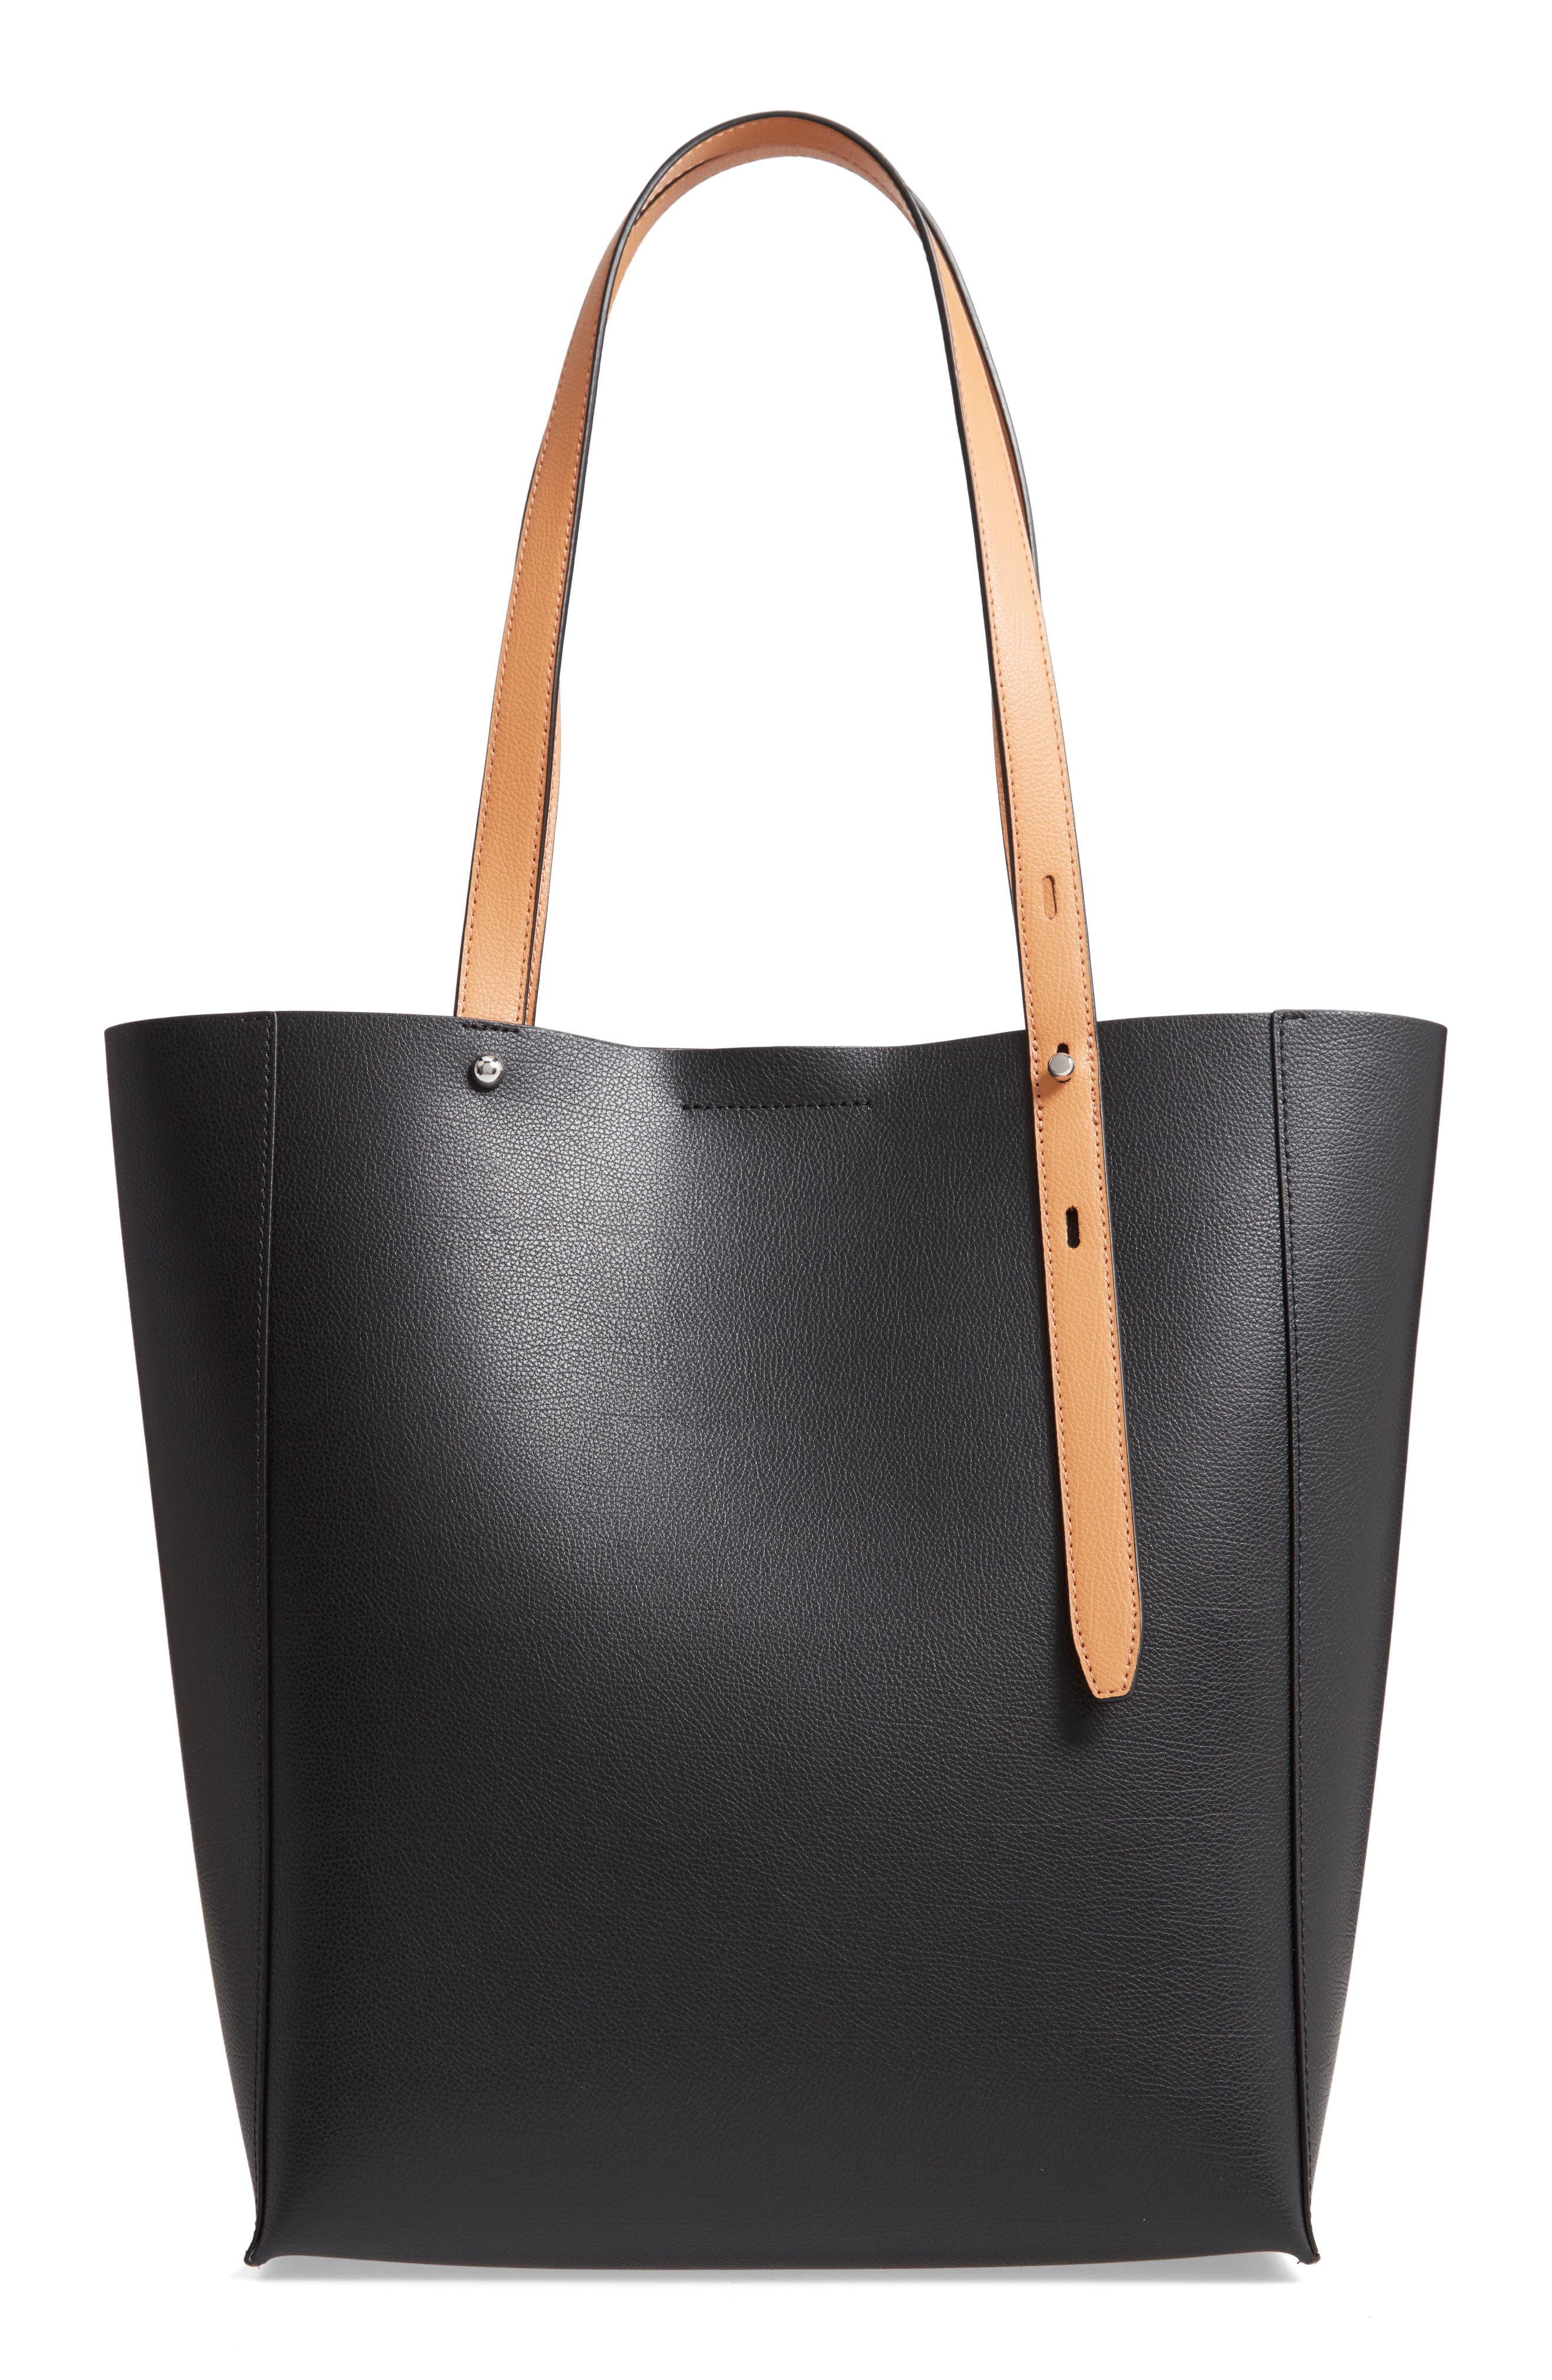 REBECCA MINKOFF Stella Leather Tote, Main, color, BLACK/ HONEY